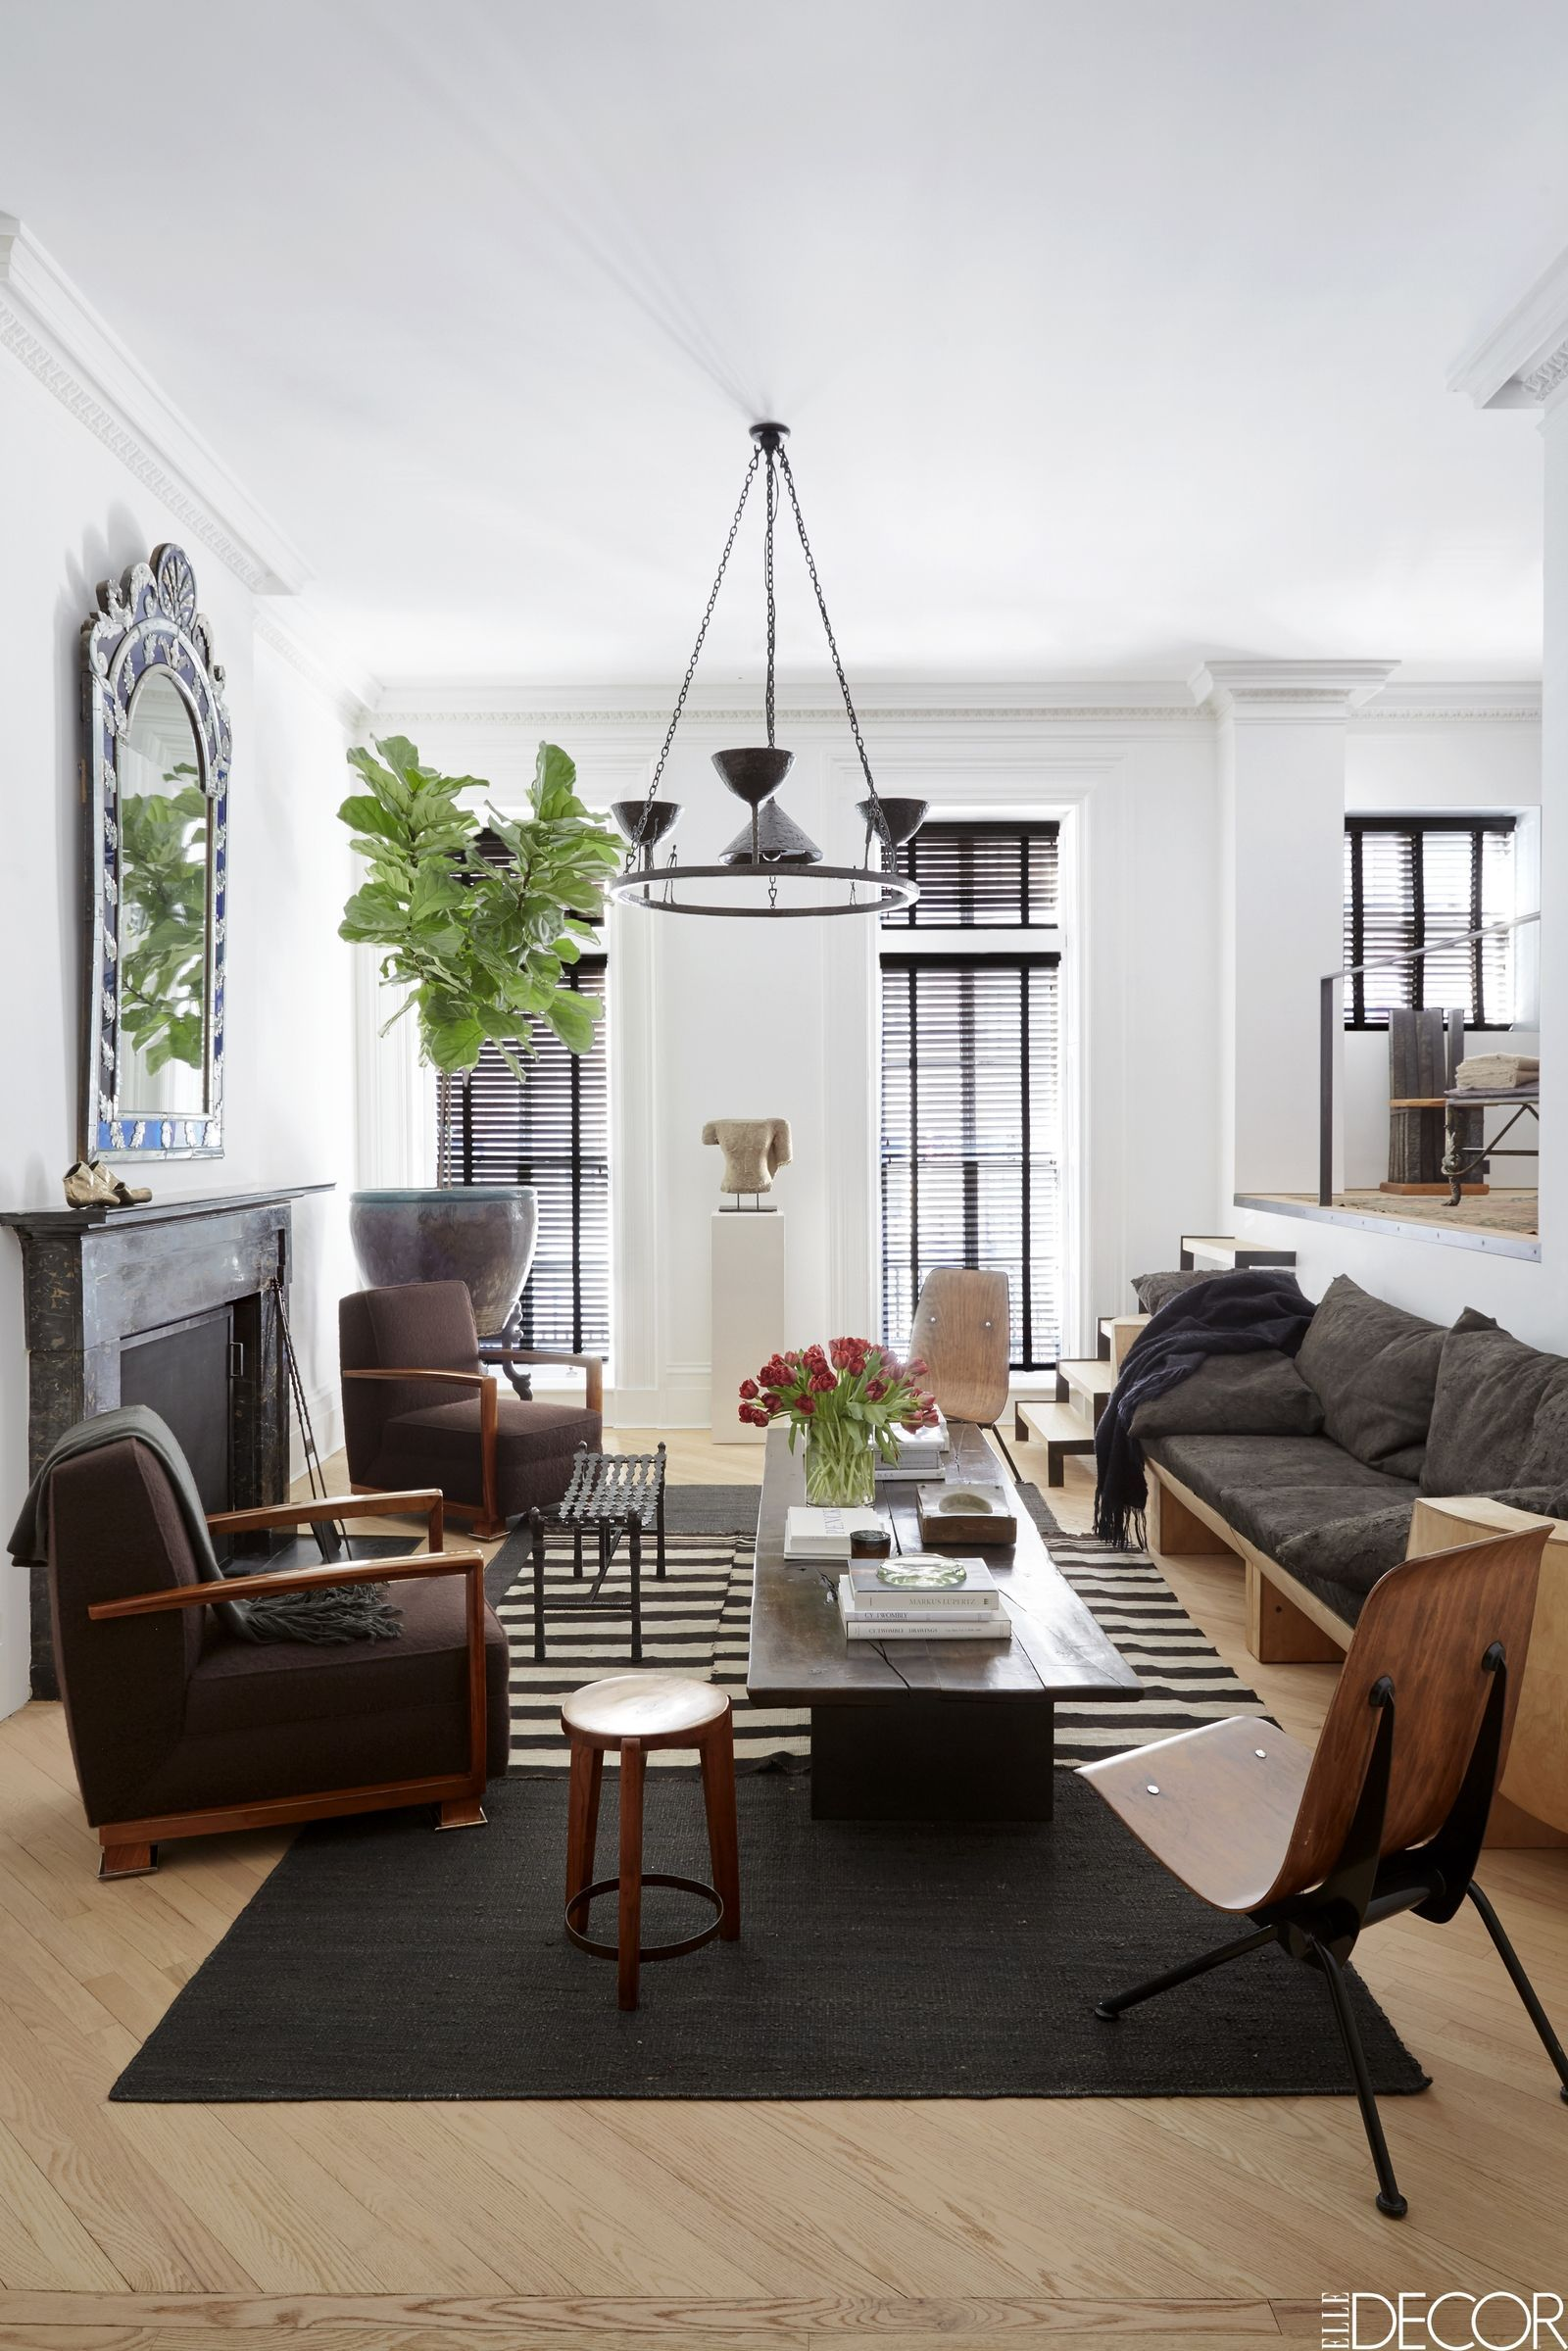 These Gorgeous Living Room Ideas Will Make You Swoon Living Room Setup Small Living Room Decor Small Living Room Design #very #small #living #room